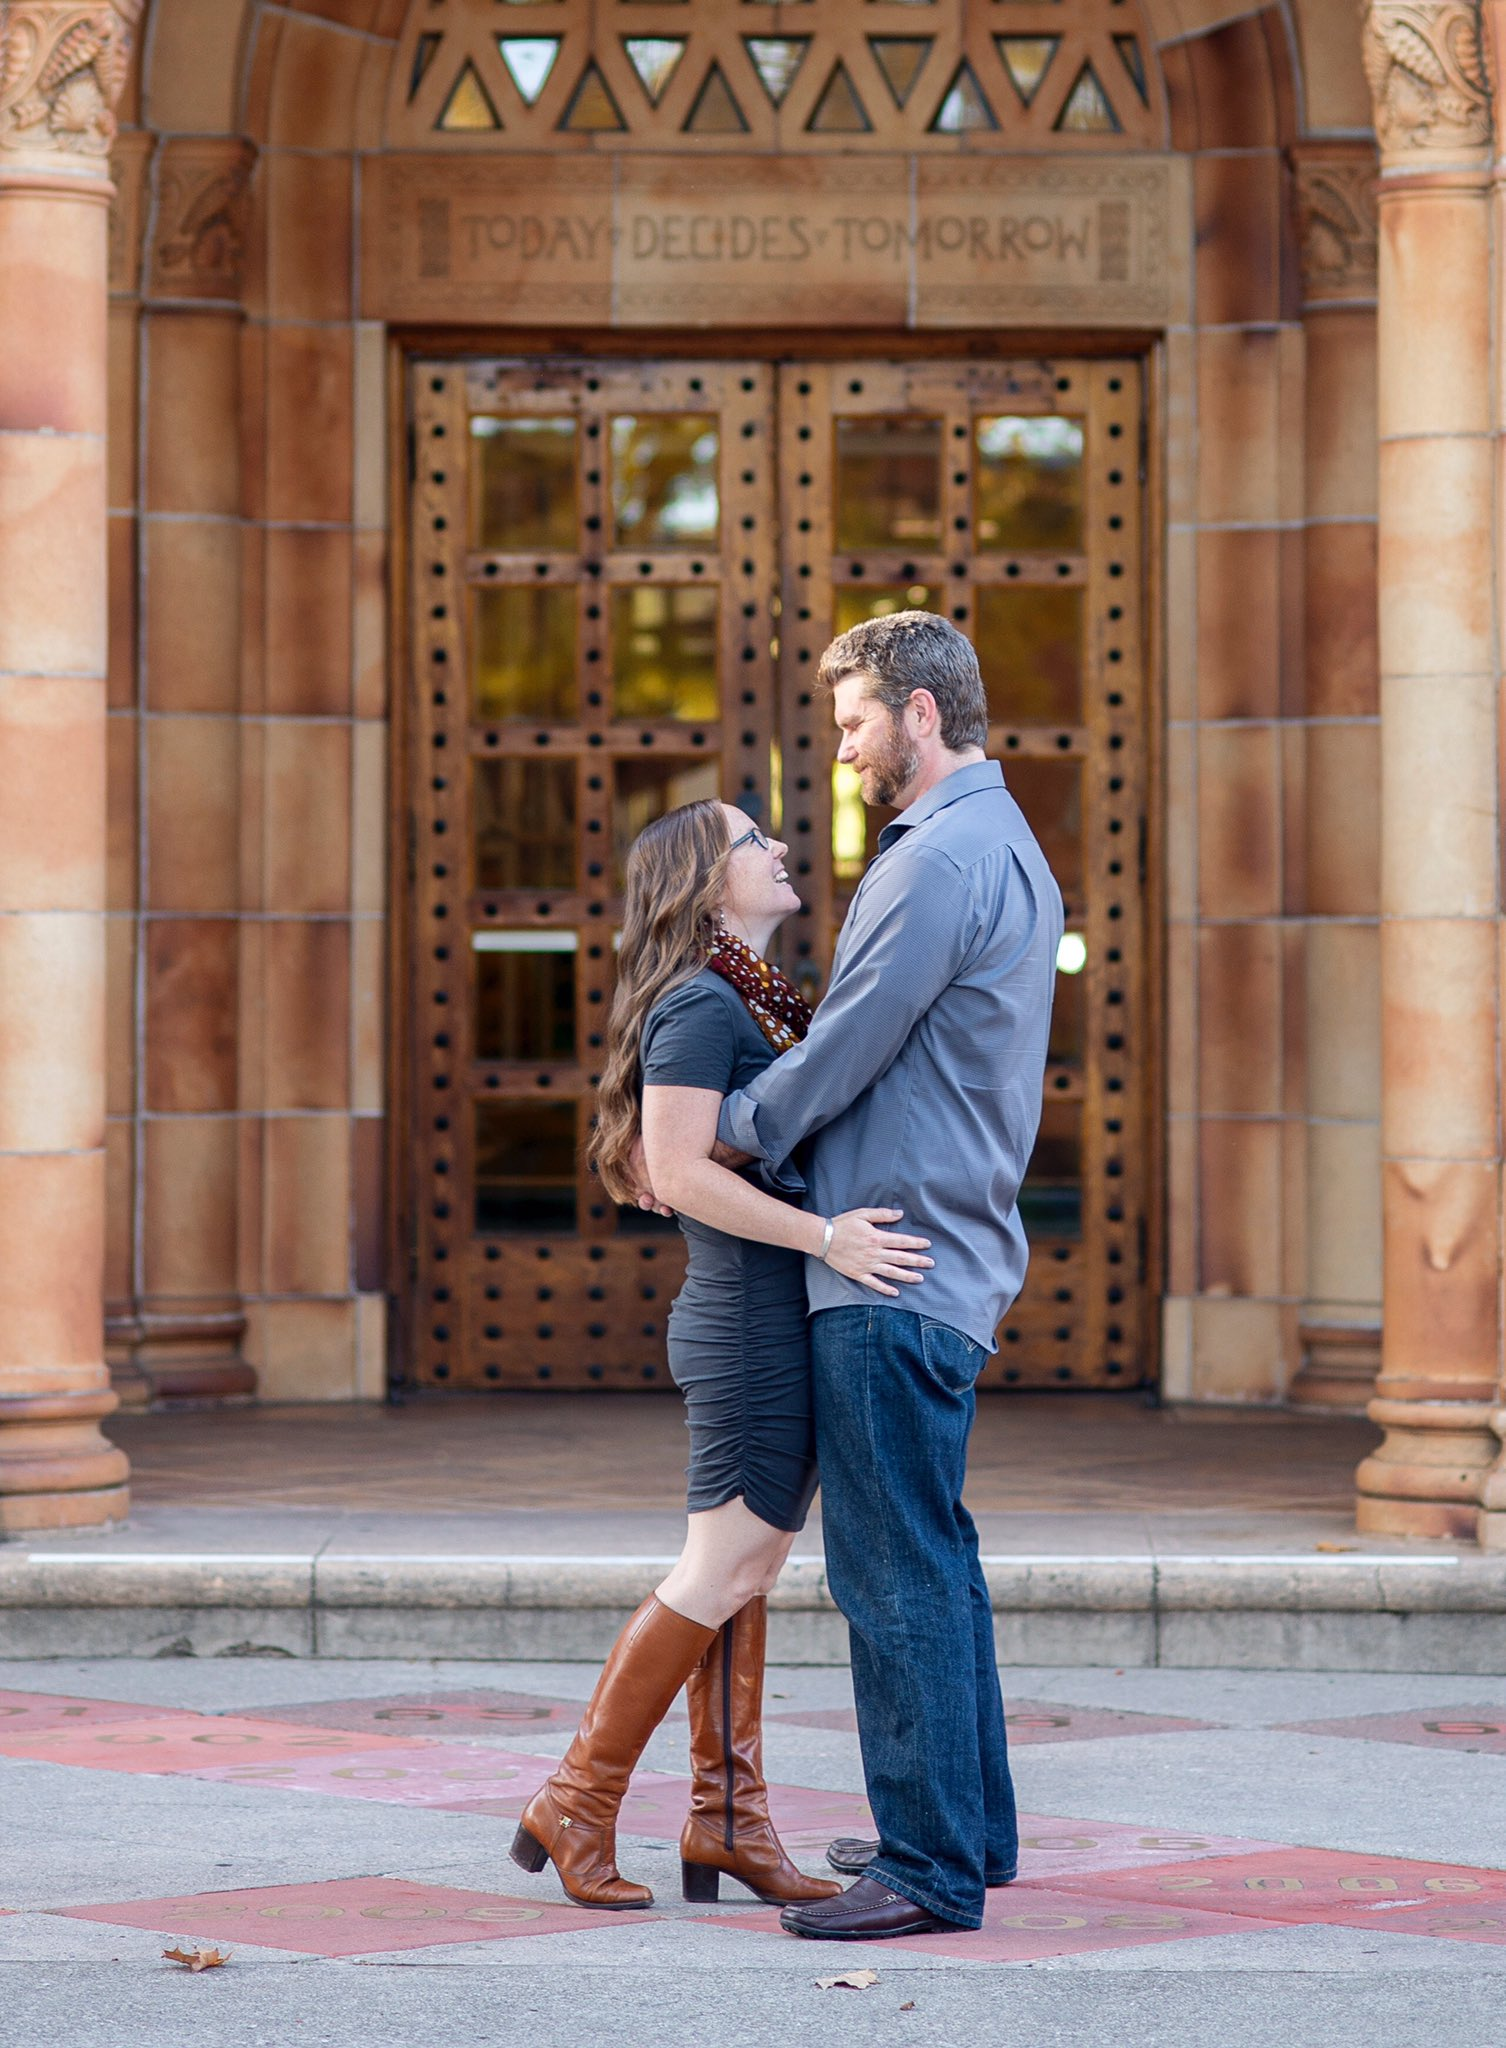 13.5 years ago, I met my best friend on the third floor of Butte Hall. In April, we'll say 'I do.' Yes, today decides tomorrow #ChicoLove https://t.co/qK9t38W68t